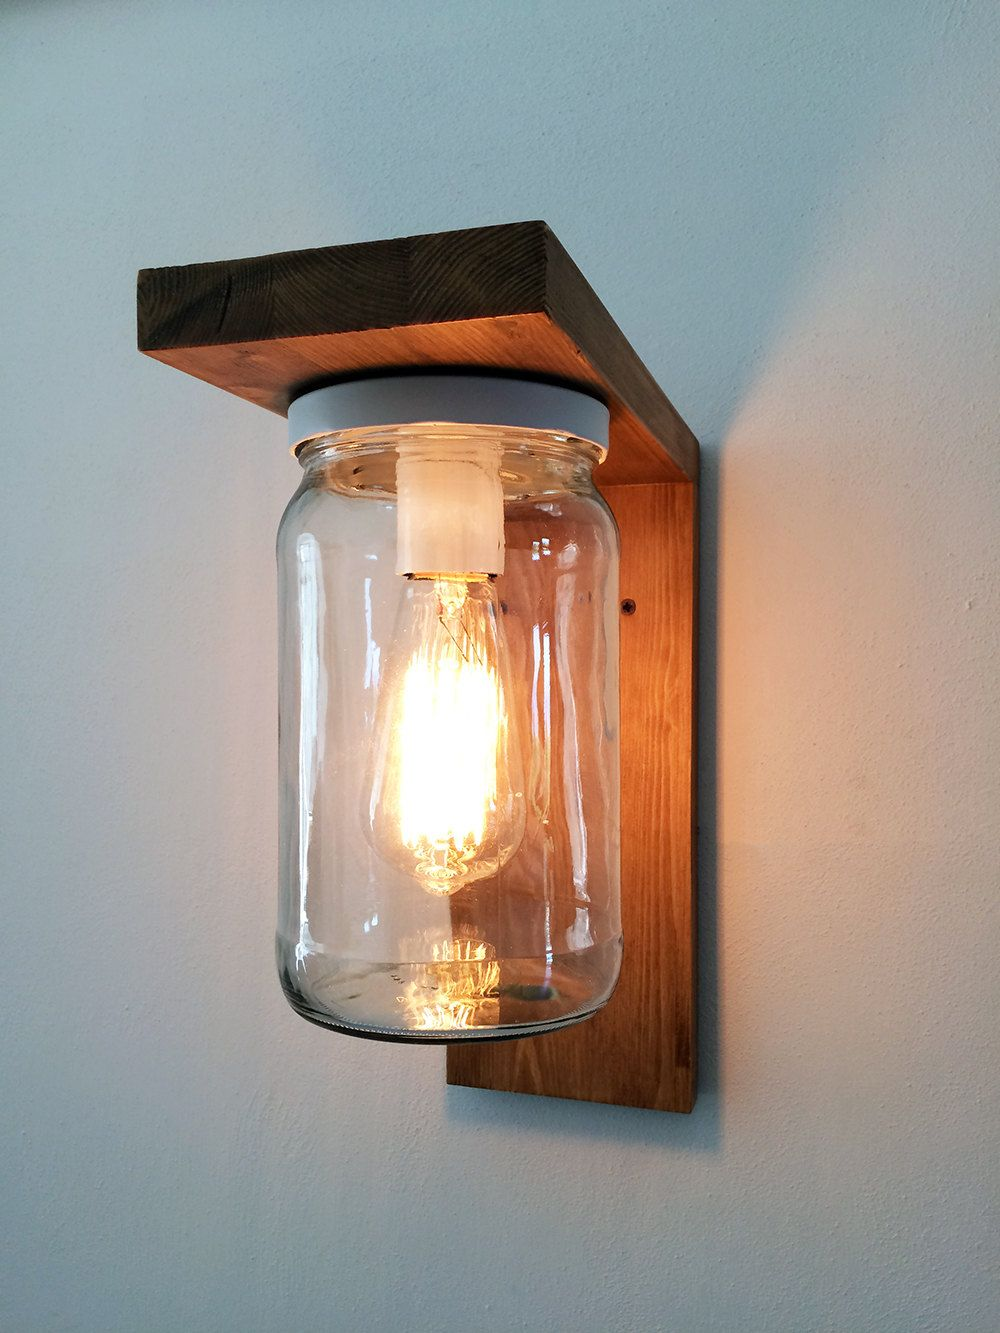 Photo of Lantern Wood Lamp for garden with jar lampshade. Wall sconce outdoor lighting.